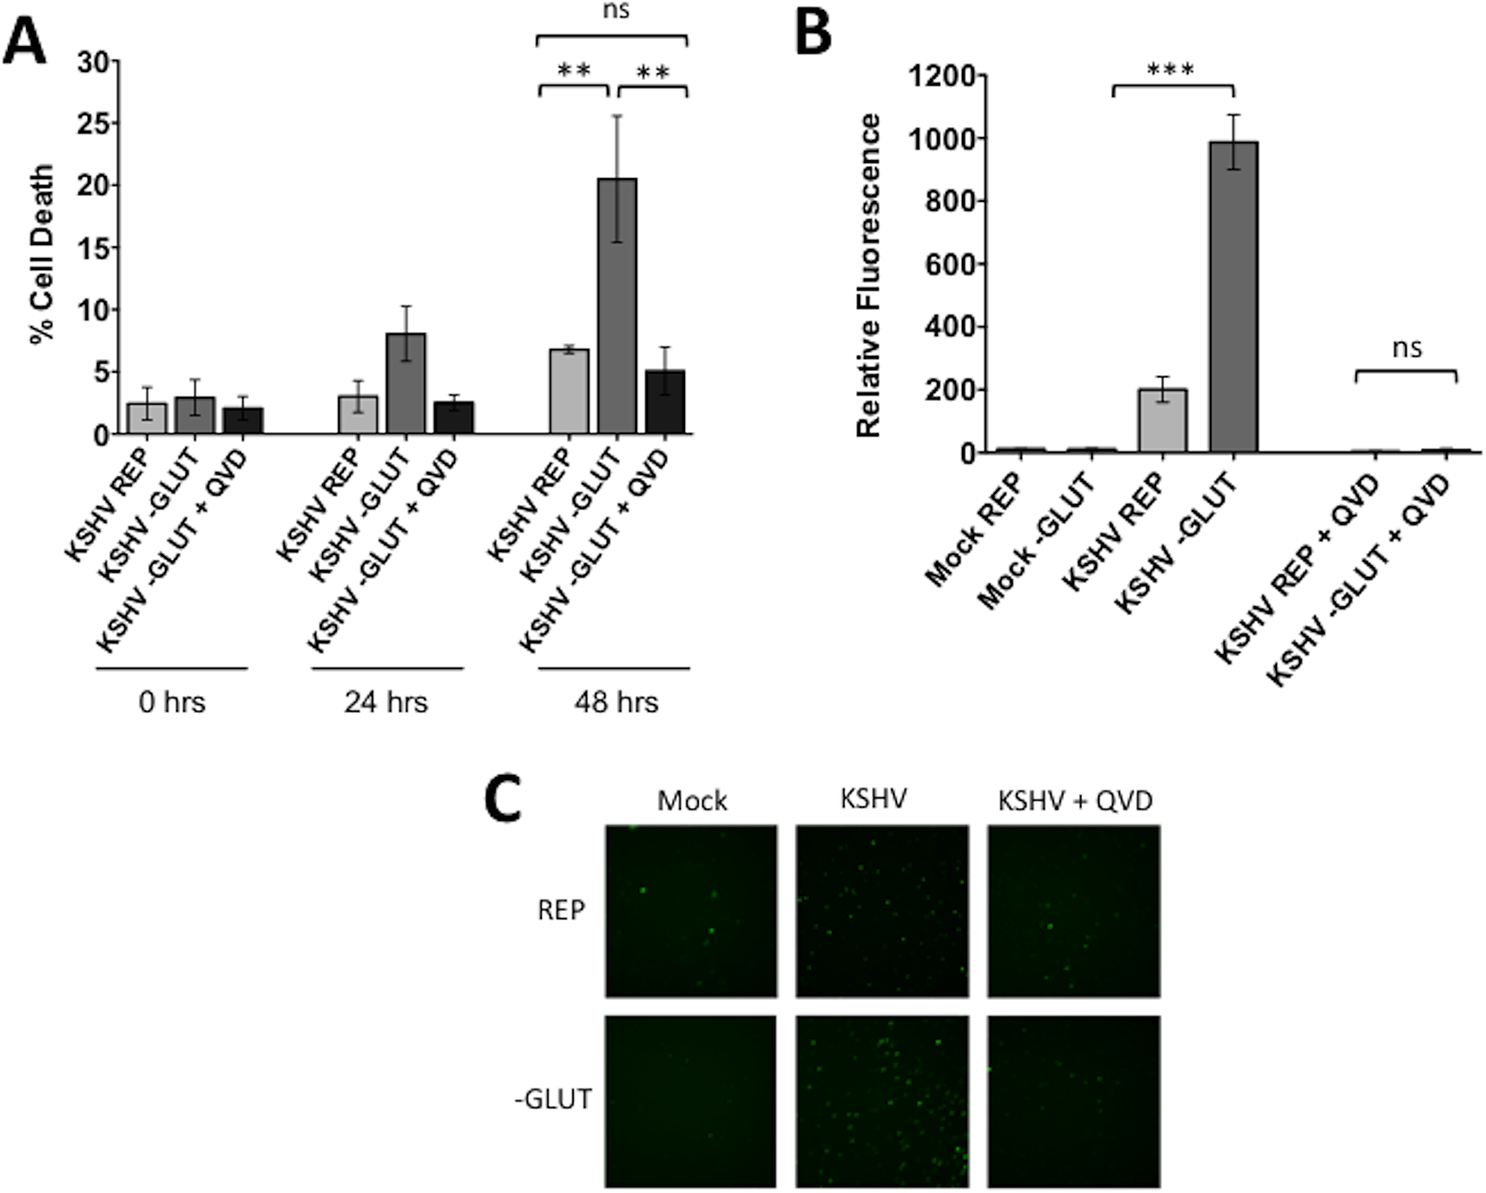 Glutamine starvation leads to apoptosis of KSHV-infected endothelial cells.